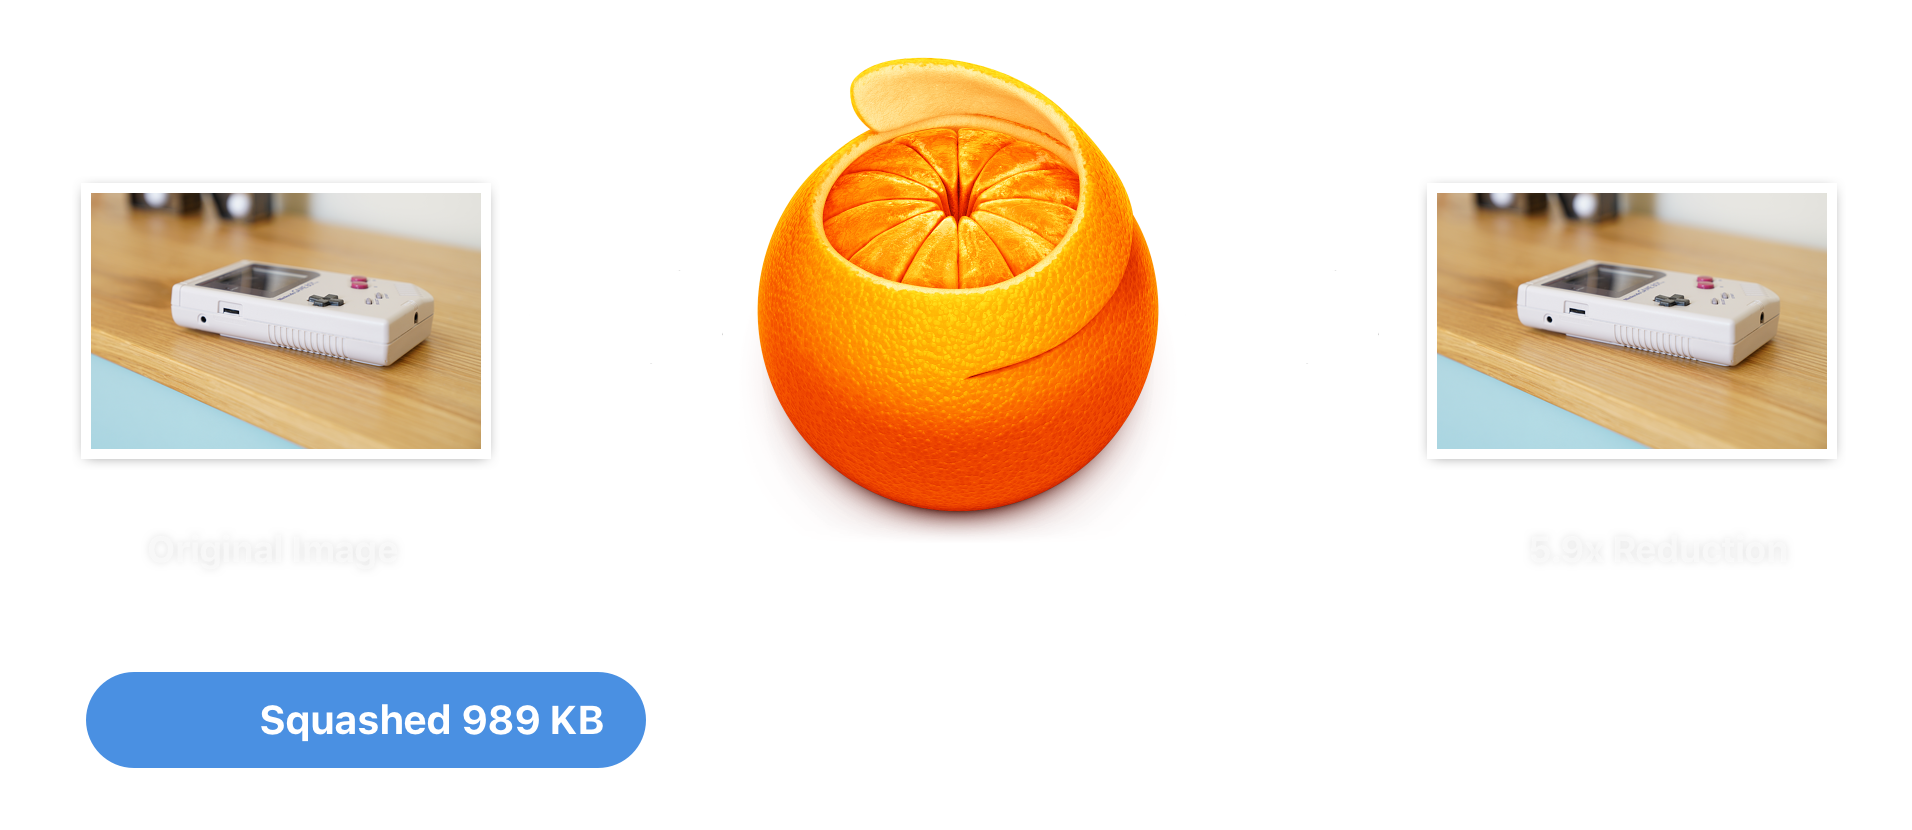 Shrink png without losing quality. Squash app for mac